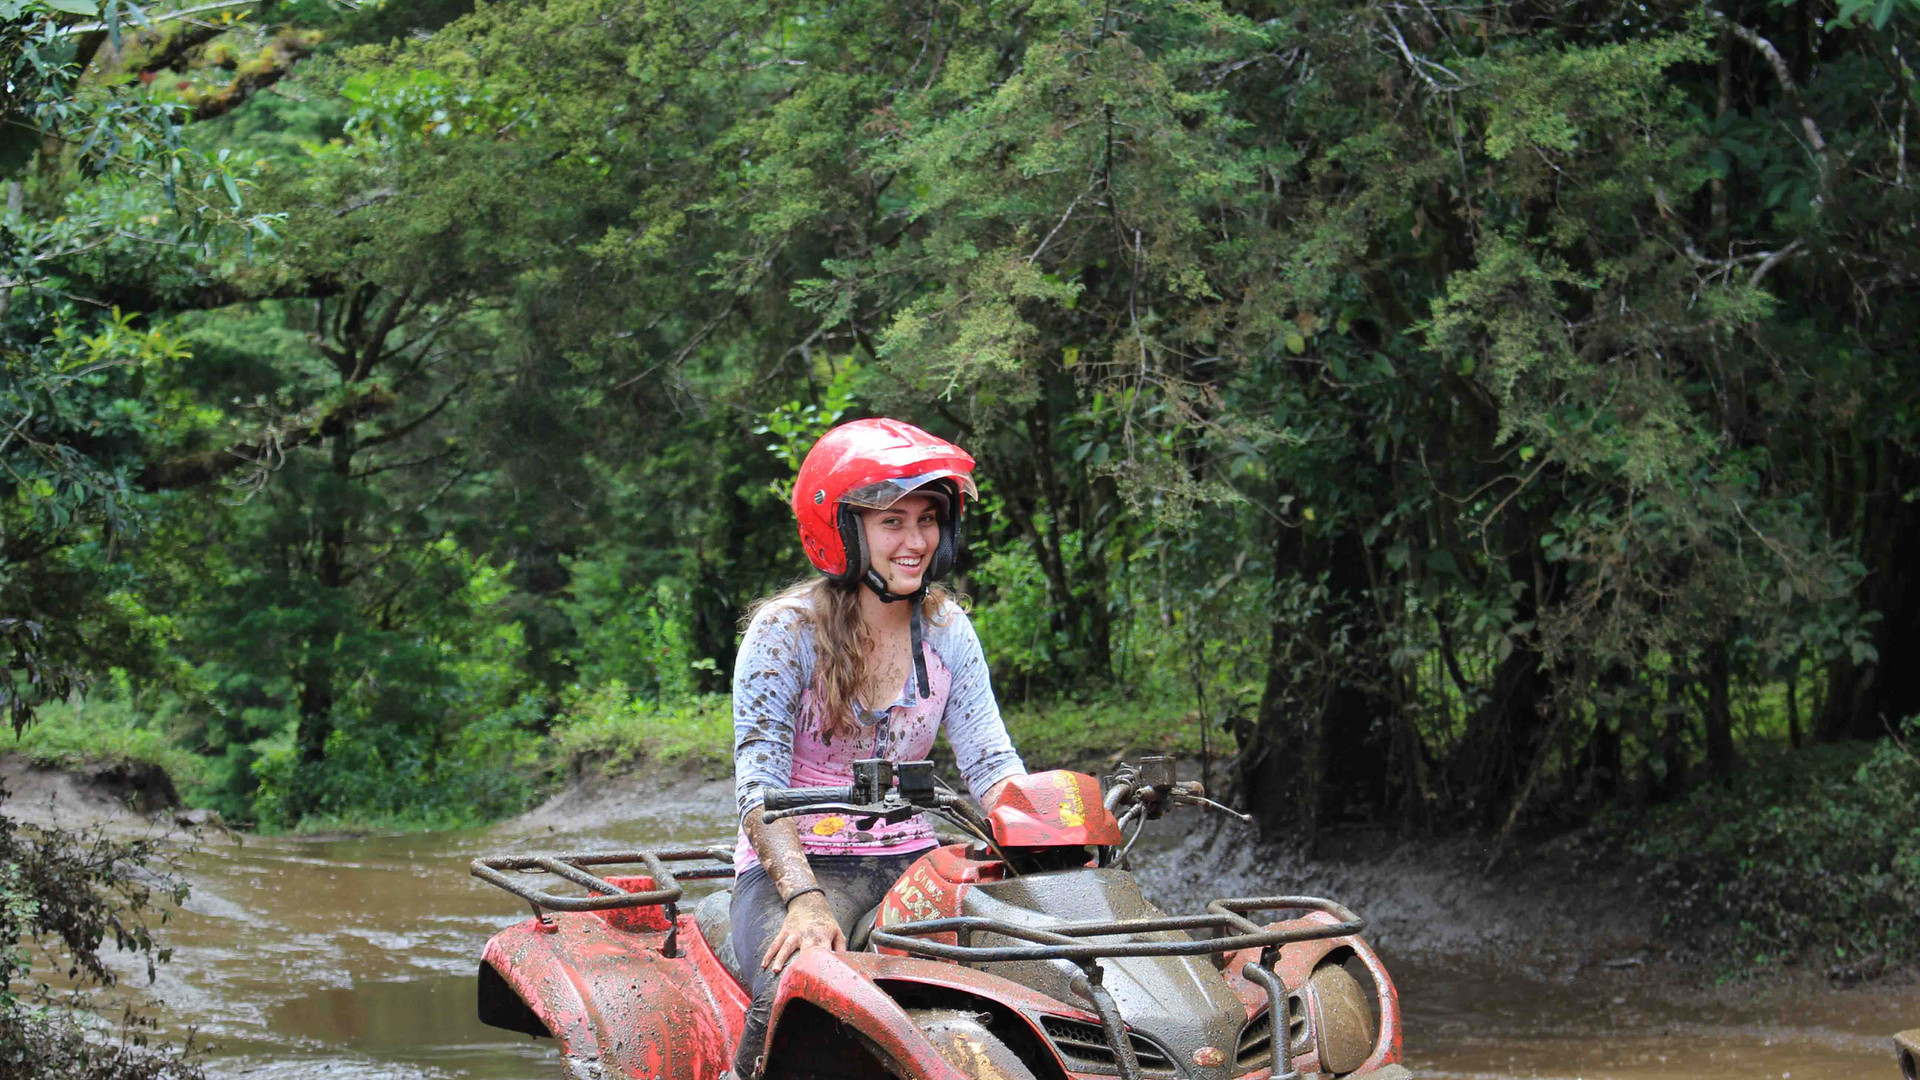 Monteverde Costa Rica ATV adventure tour woman with red helmet crossing traversing river smiling